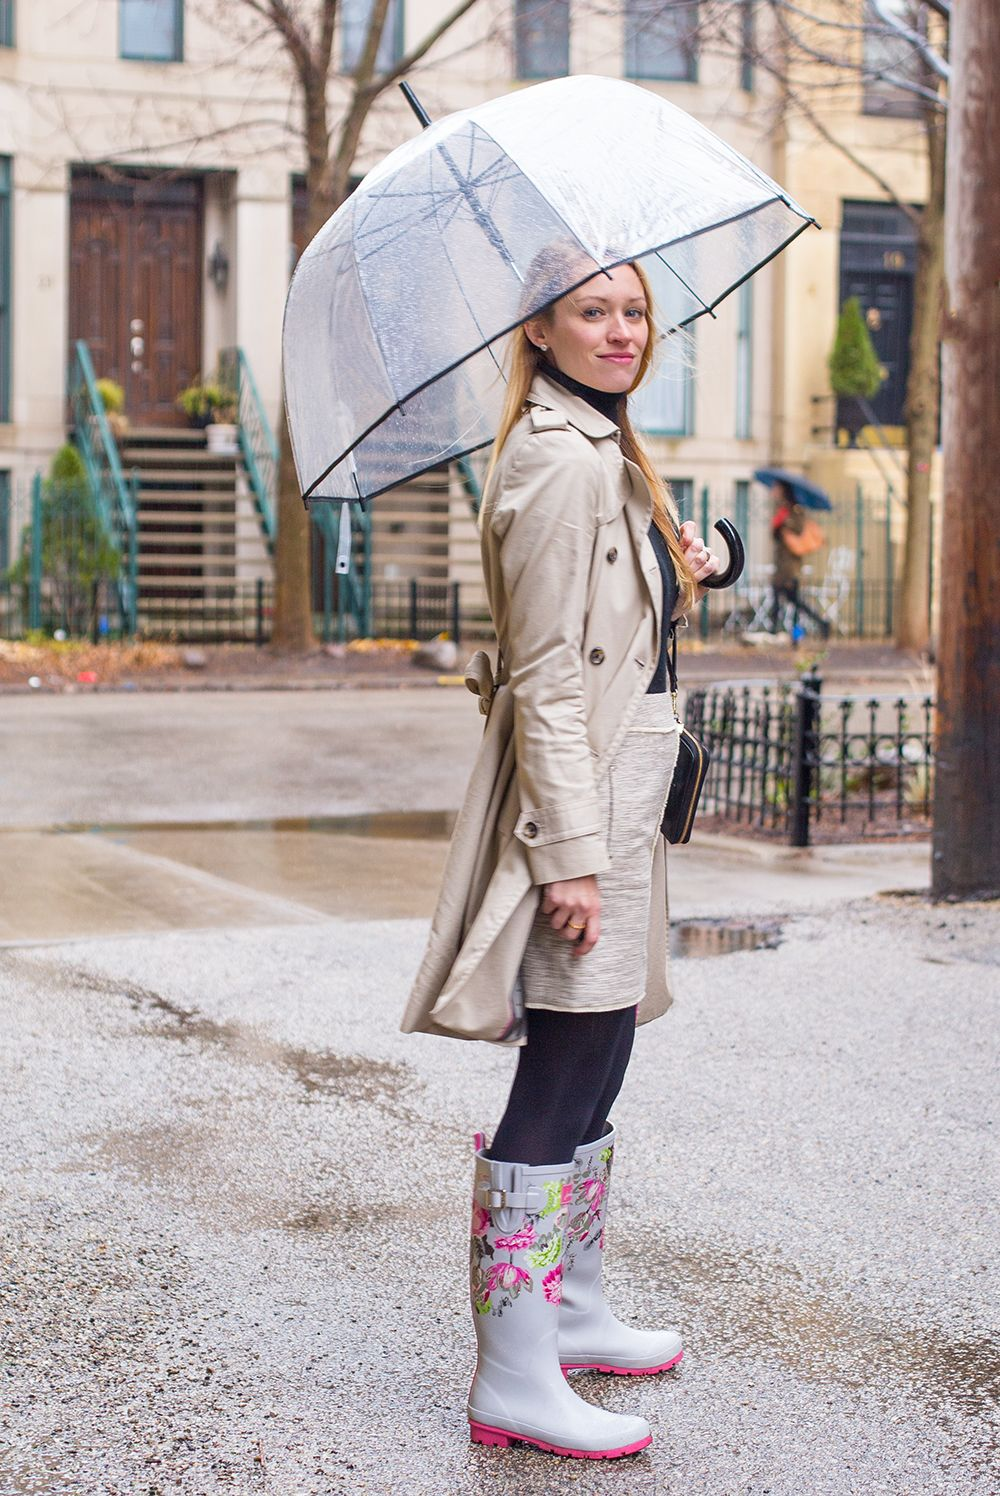 f38d9b6d1 rainy day outfit trench coat outfit wellies outfit rain boots outfit joules  boots bubble umbrella